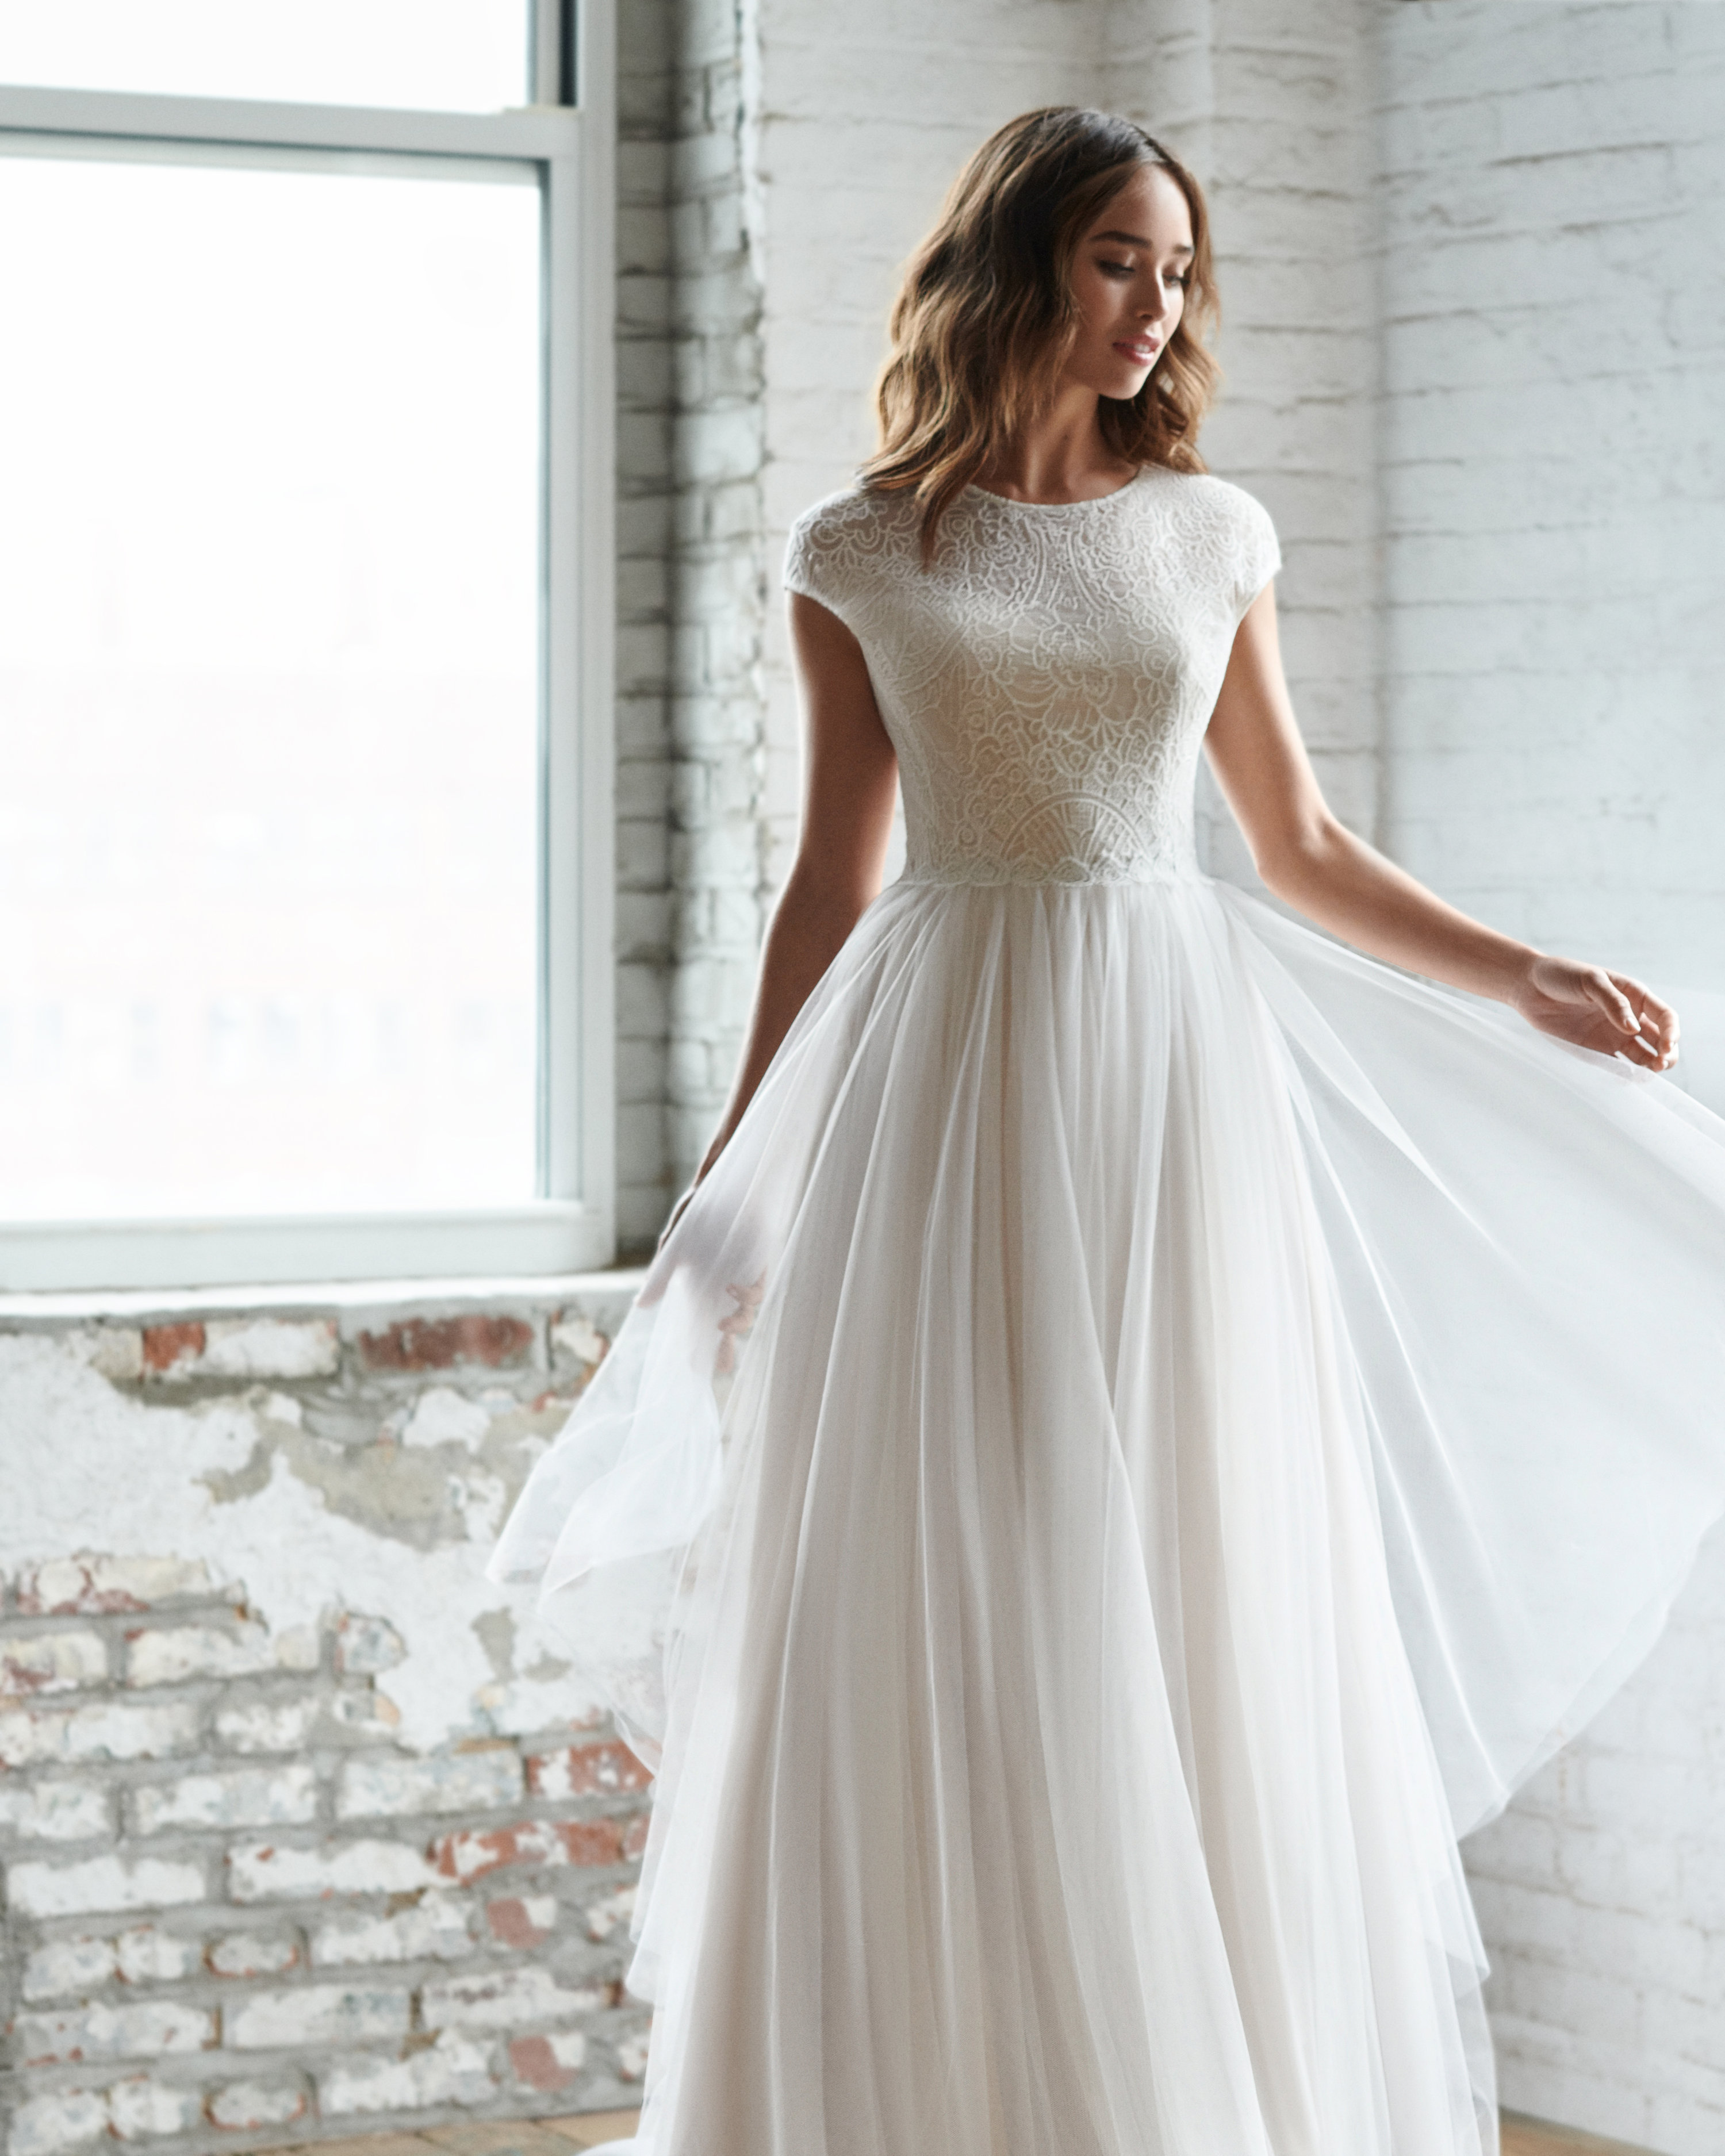 Bridal Gowns And Wedding Dresses By Jlm Couture Style 7854 Riva